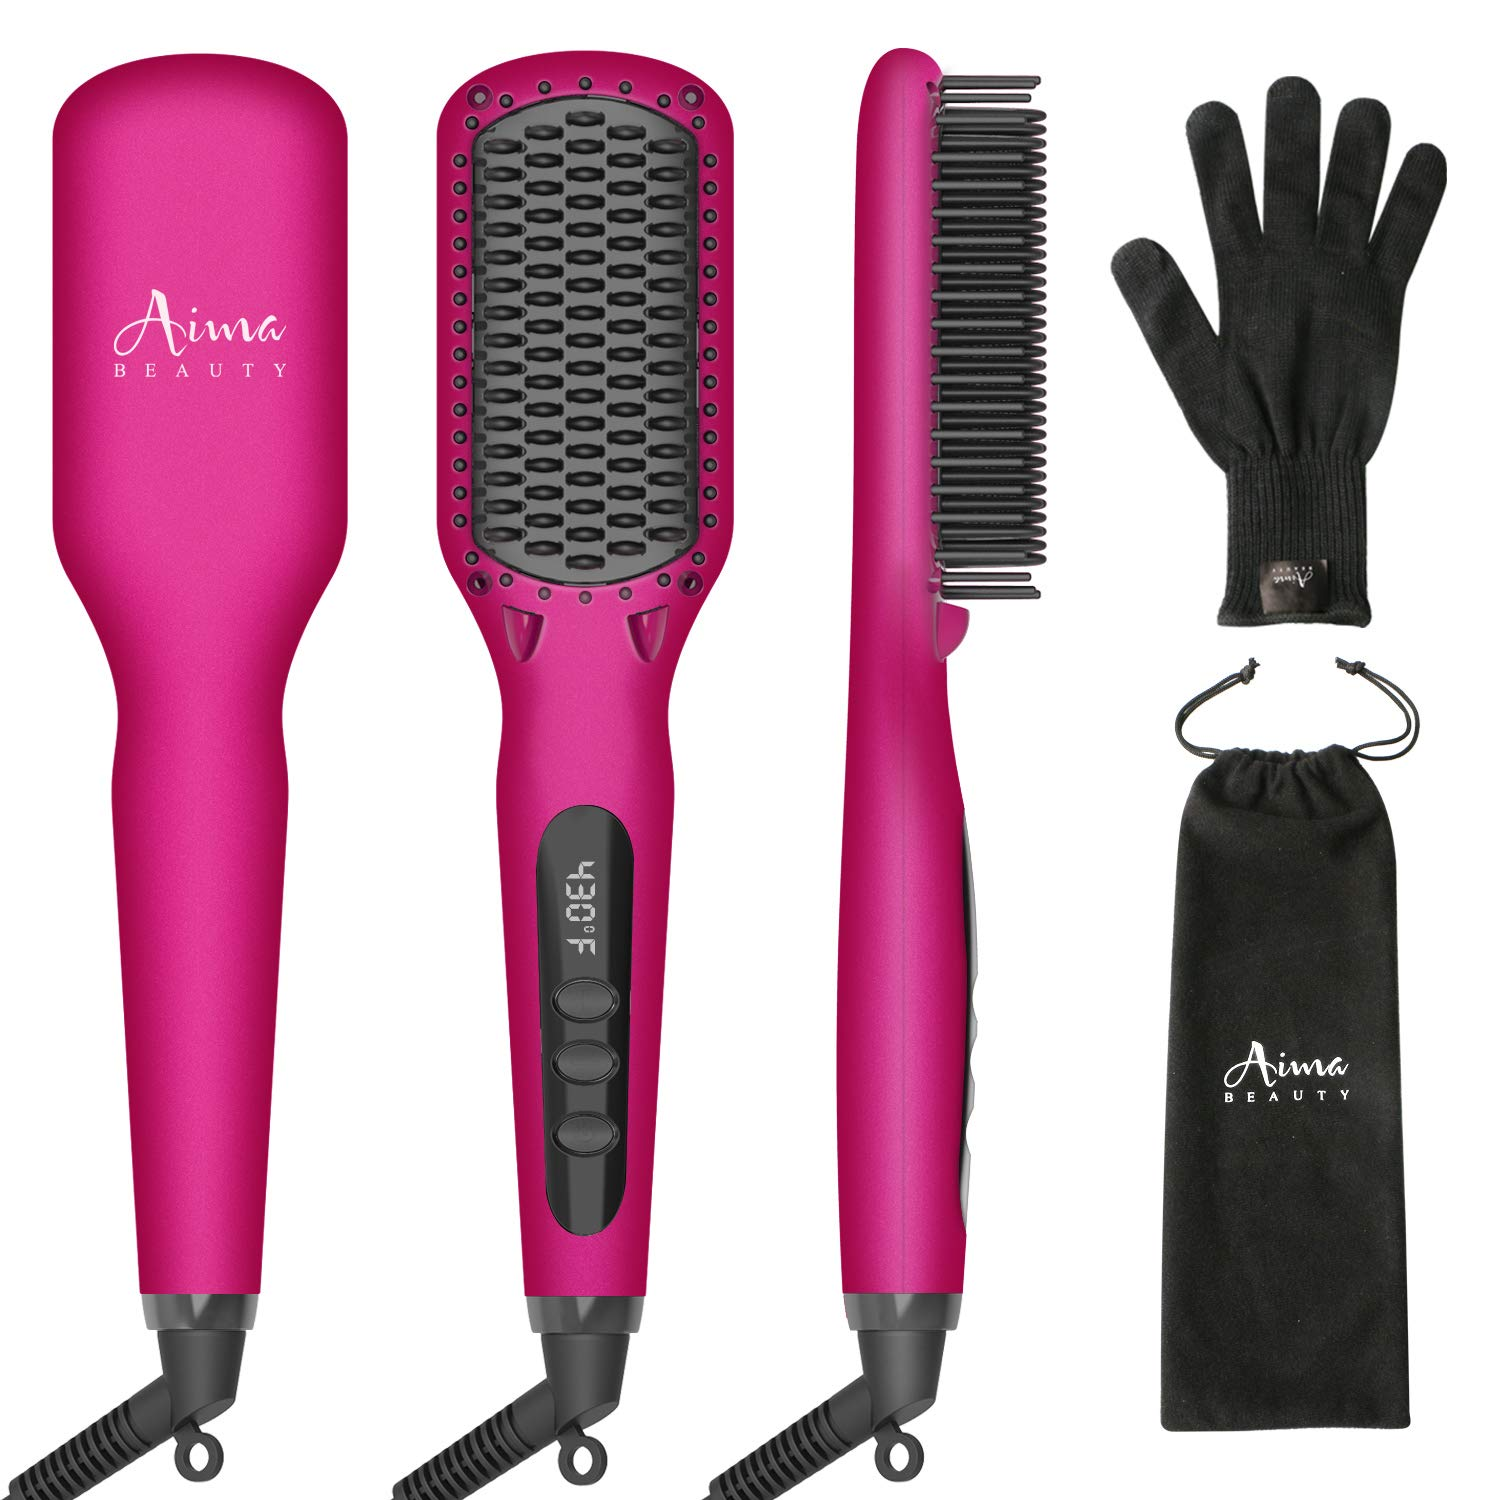 Ionic Hair Straightener Brush, Heated Straightening Iron Brush for Hair LED Display Adjustable Temperatures Anti Scald Hair Comb 30s Fast Heating, Hair Care Comb Set for Travel Salon